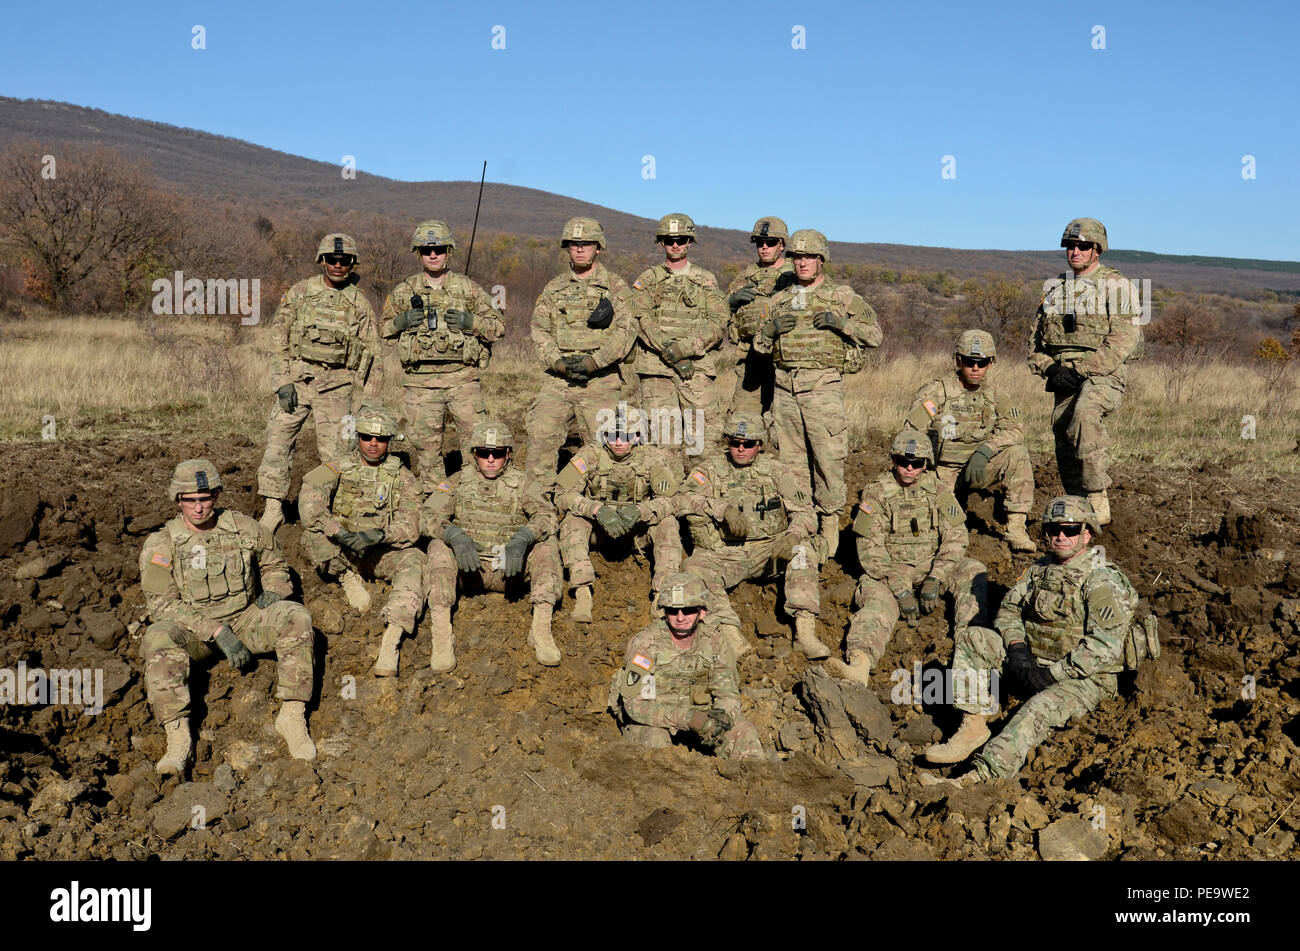 Soldiers of 1st Armored Brigade Combat Team, attached to 5th Squadron, 7th Cavalry Regiment, 3rd Infantry Division, stationed at Fort Stewart, Ga., pose for a group photo around the crater they just made with 100 pounds of explosives during a field training exercise in support of Operation Atlantic Resolve at Novo Selo Training Center, Bulgaria, Nov. 19, 2015. Cratering charges are used in order to quickly create an obstacle in a tactical scenario and to deny the enemy freedom of maneuver. (U.S. Army photo by Staff Sgt. Steven M. Colvin/Released) - Stock Image